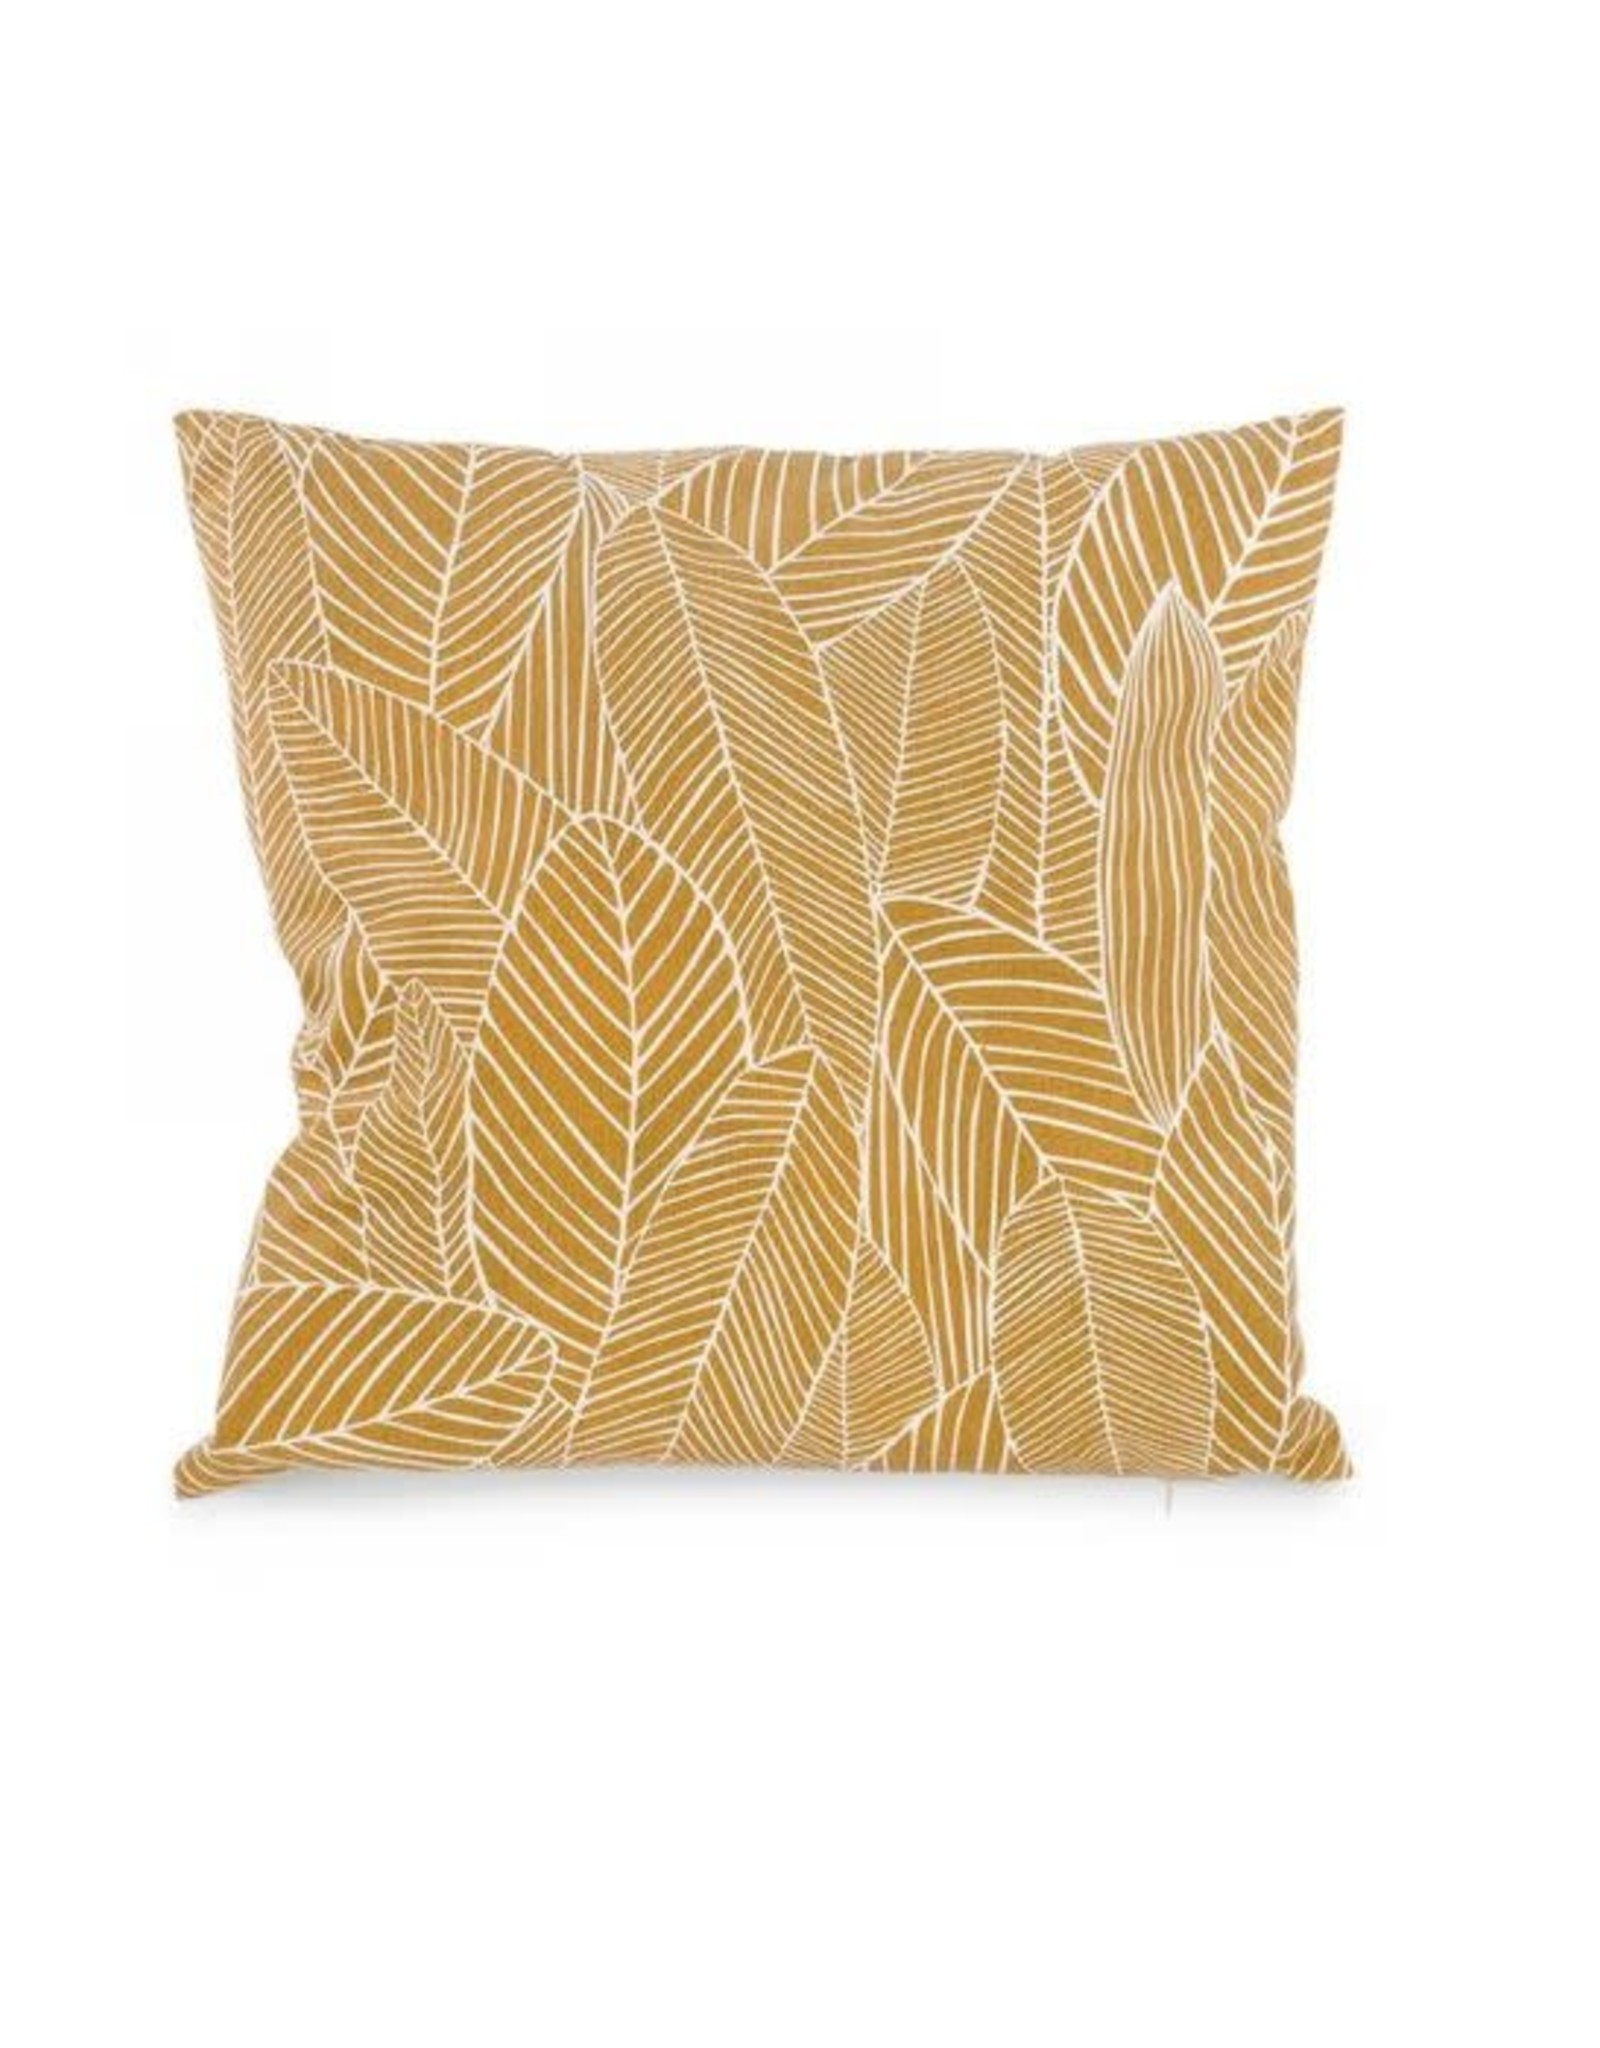 Yellow cushion with leaf pattern